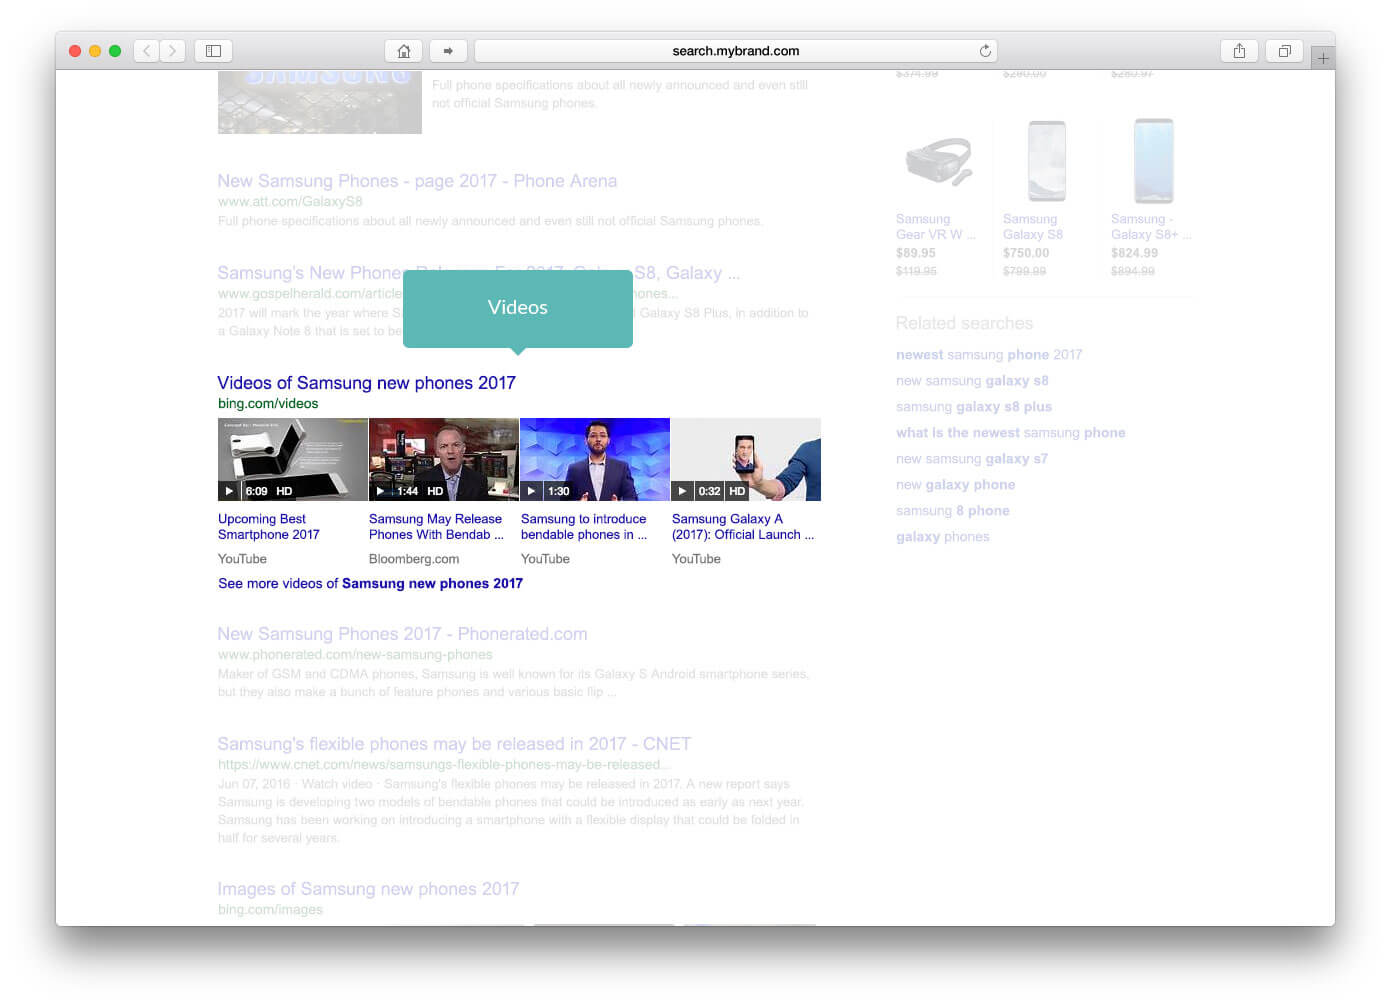 integrating vertical results within algo results video content